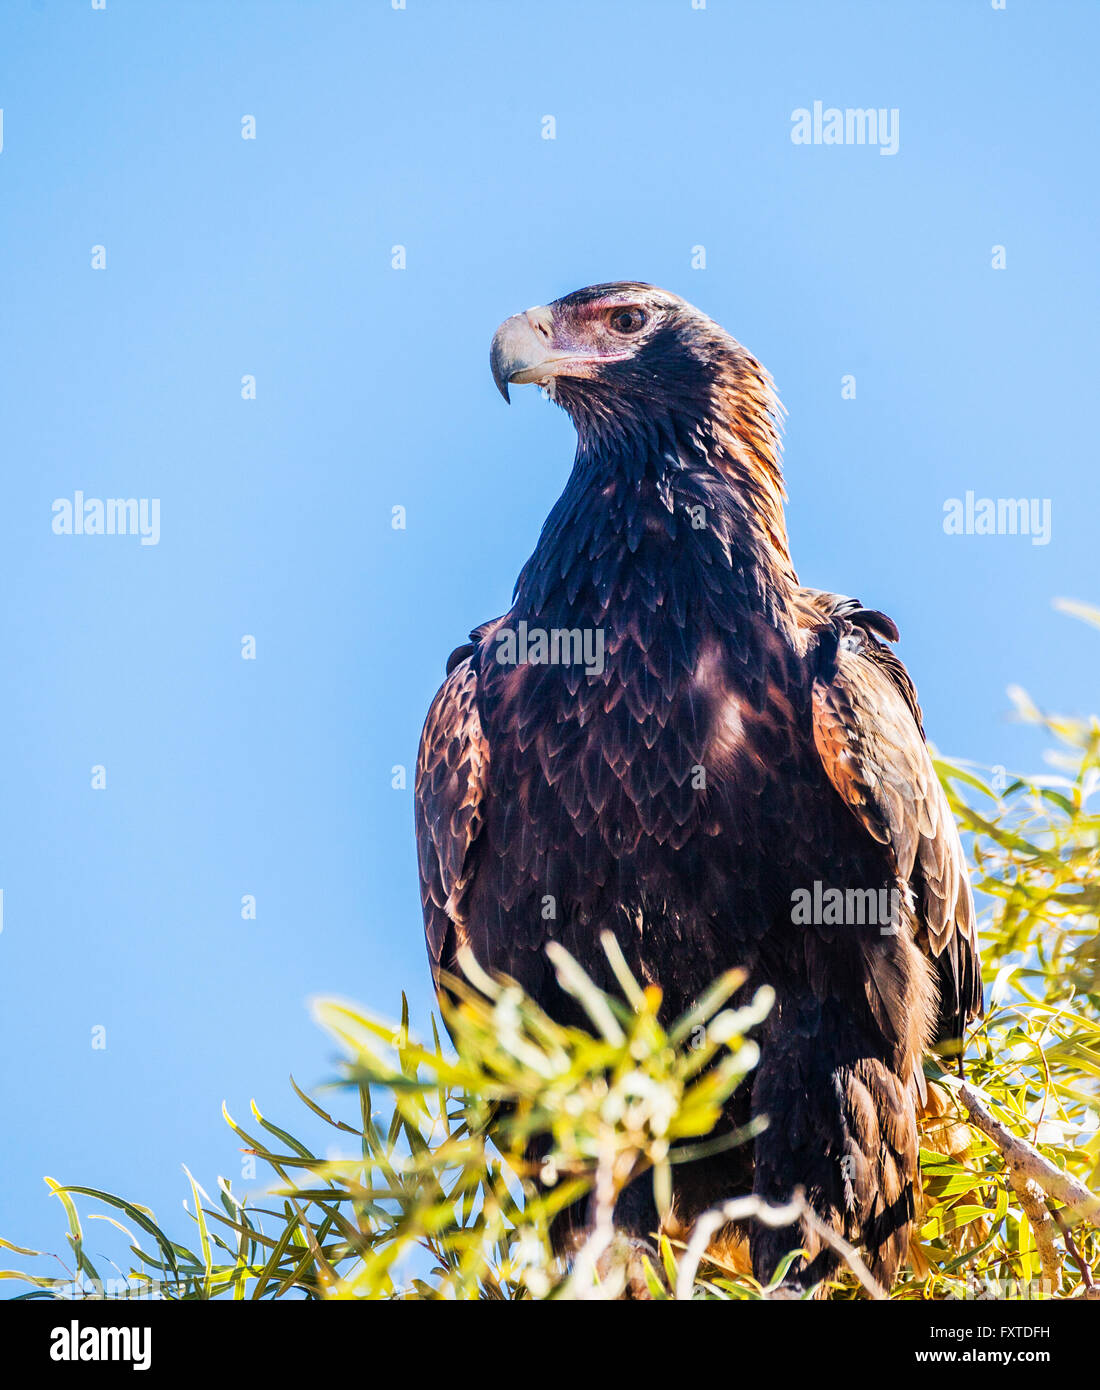 a Wedge-tailed Eagle, Aquila audax, the largest bird of prey in Australia is perching on a treetop - Stock Image